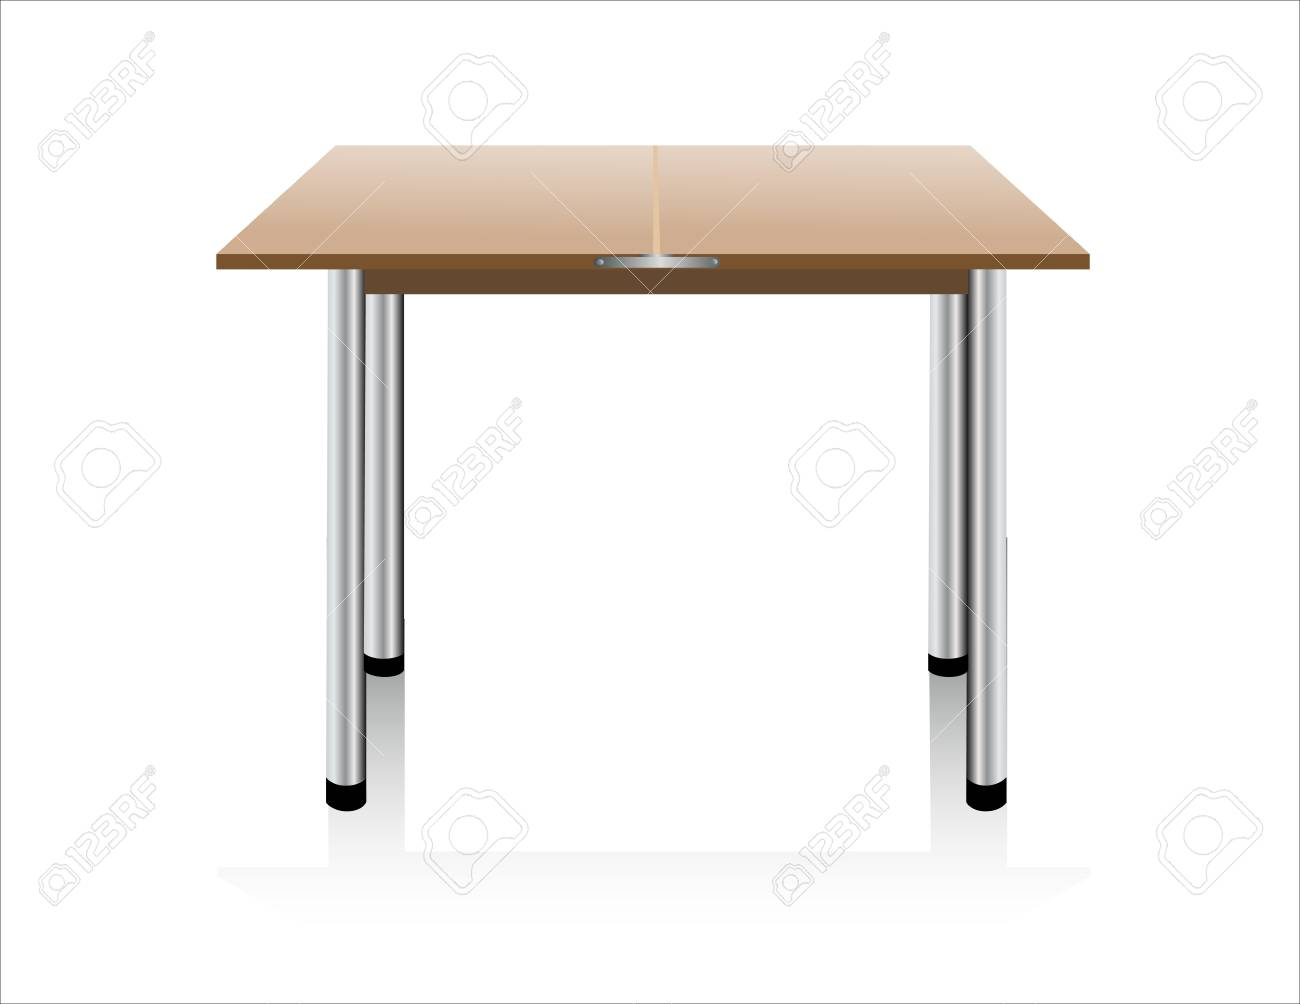 table on white background. Stock Vector - 15993647